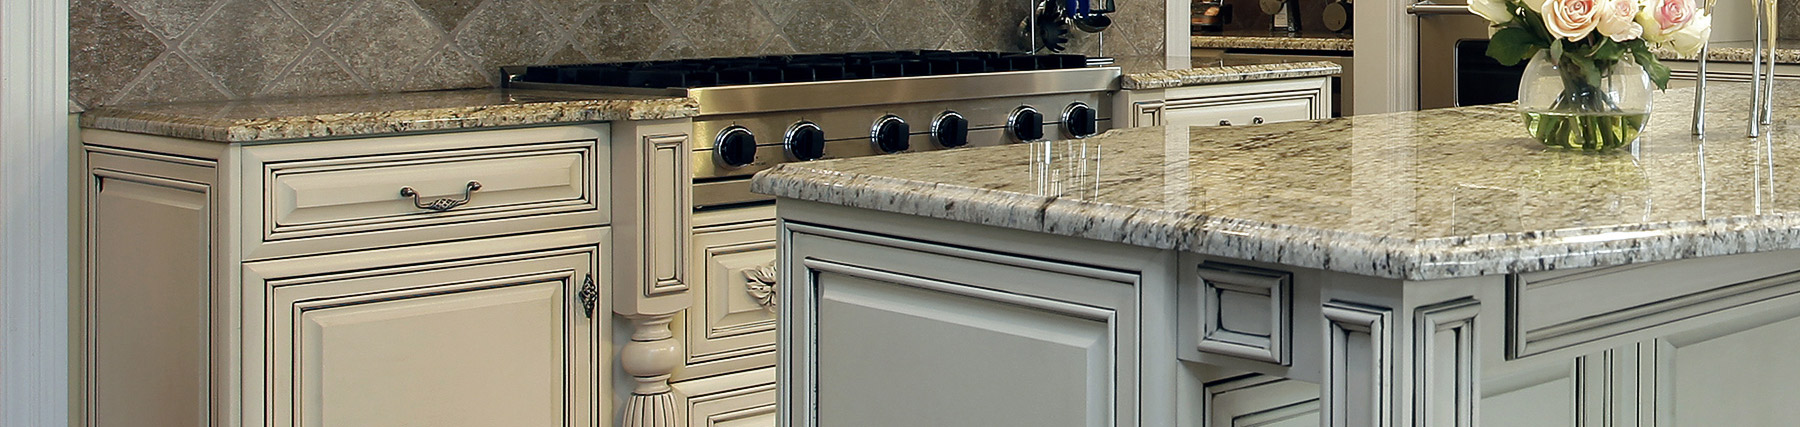 ... Quality Service And Value... Granite ...